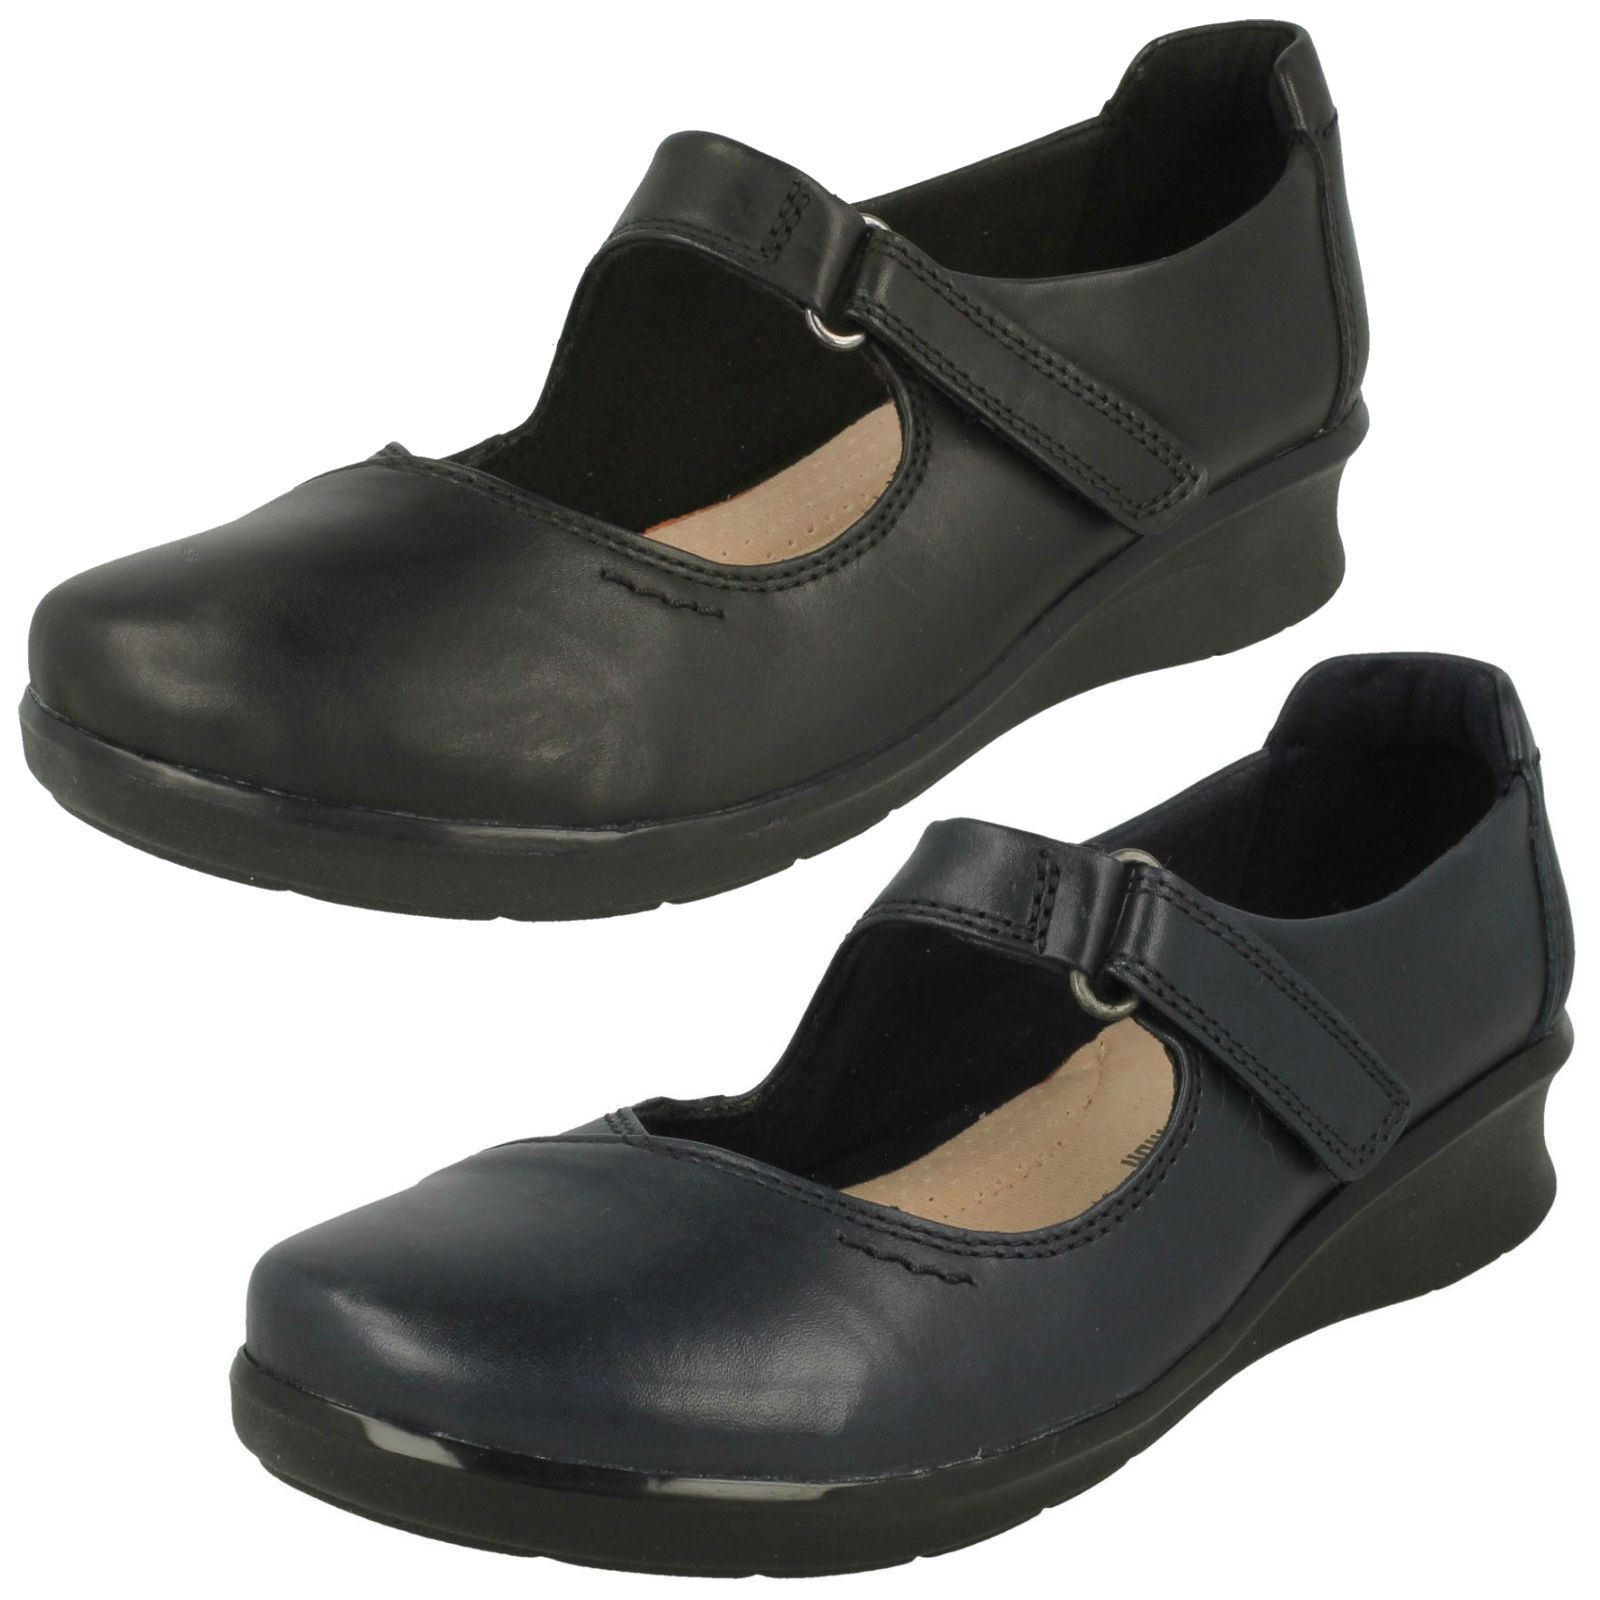 3df3faed6ab512 Clarks Ladies Mary Jane Style Shoes Hope Henley